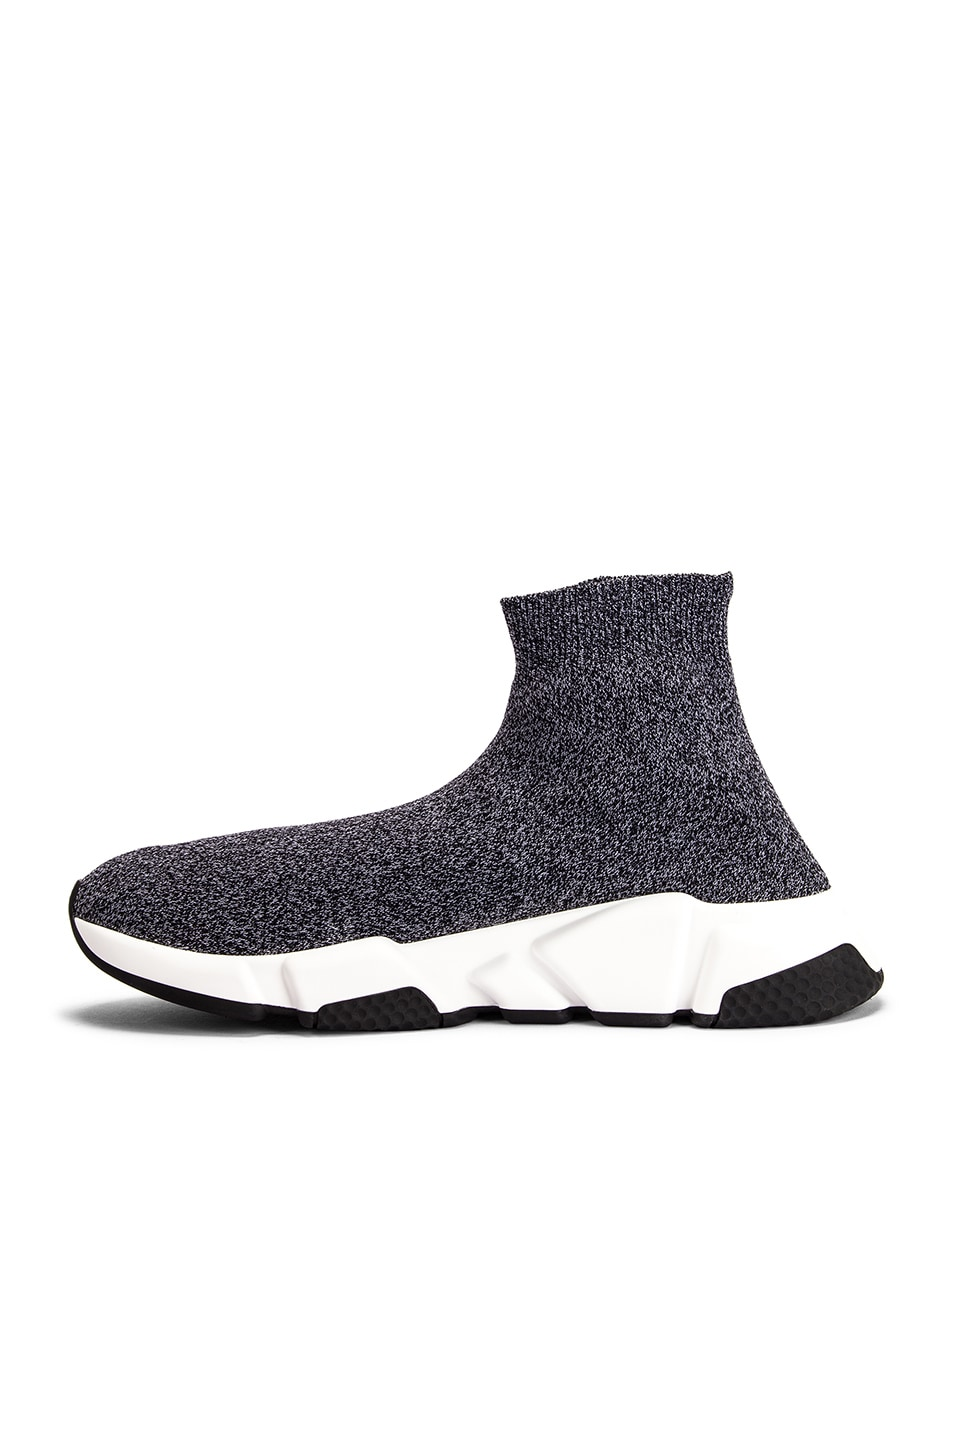 Image 5 of Balenciaga Speed Knit Sneakers in Black & White